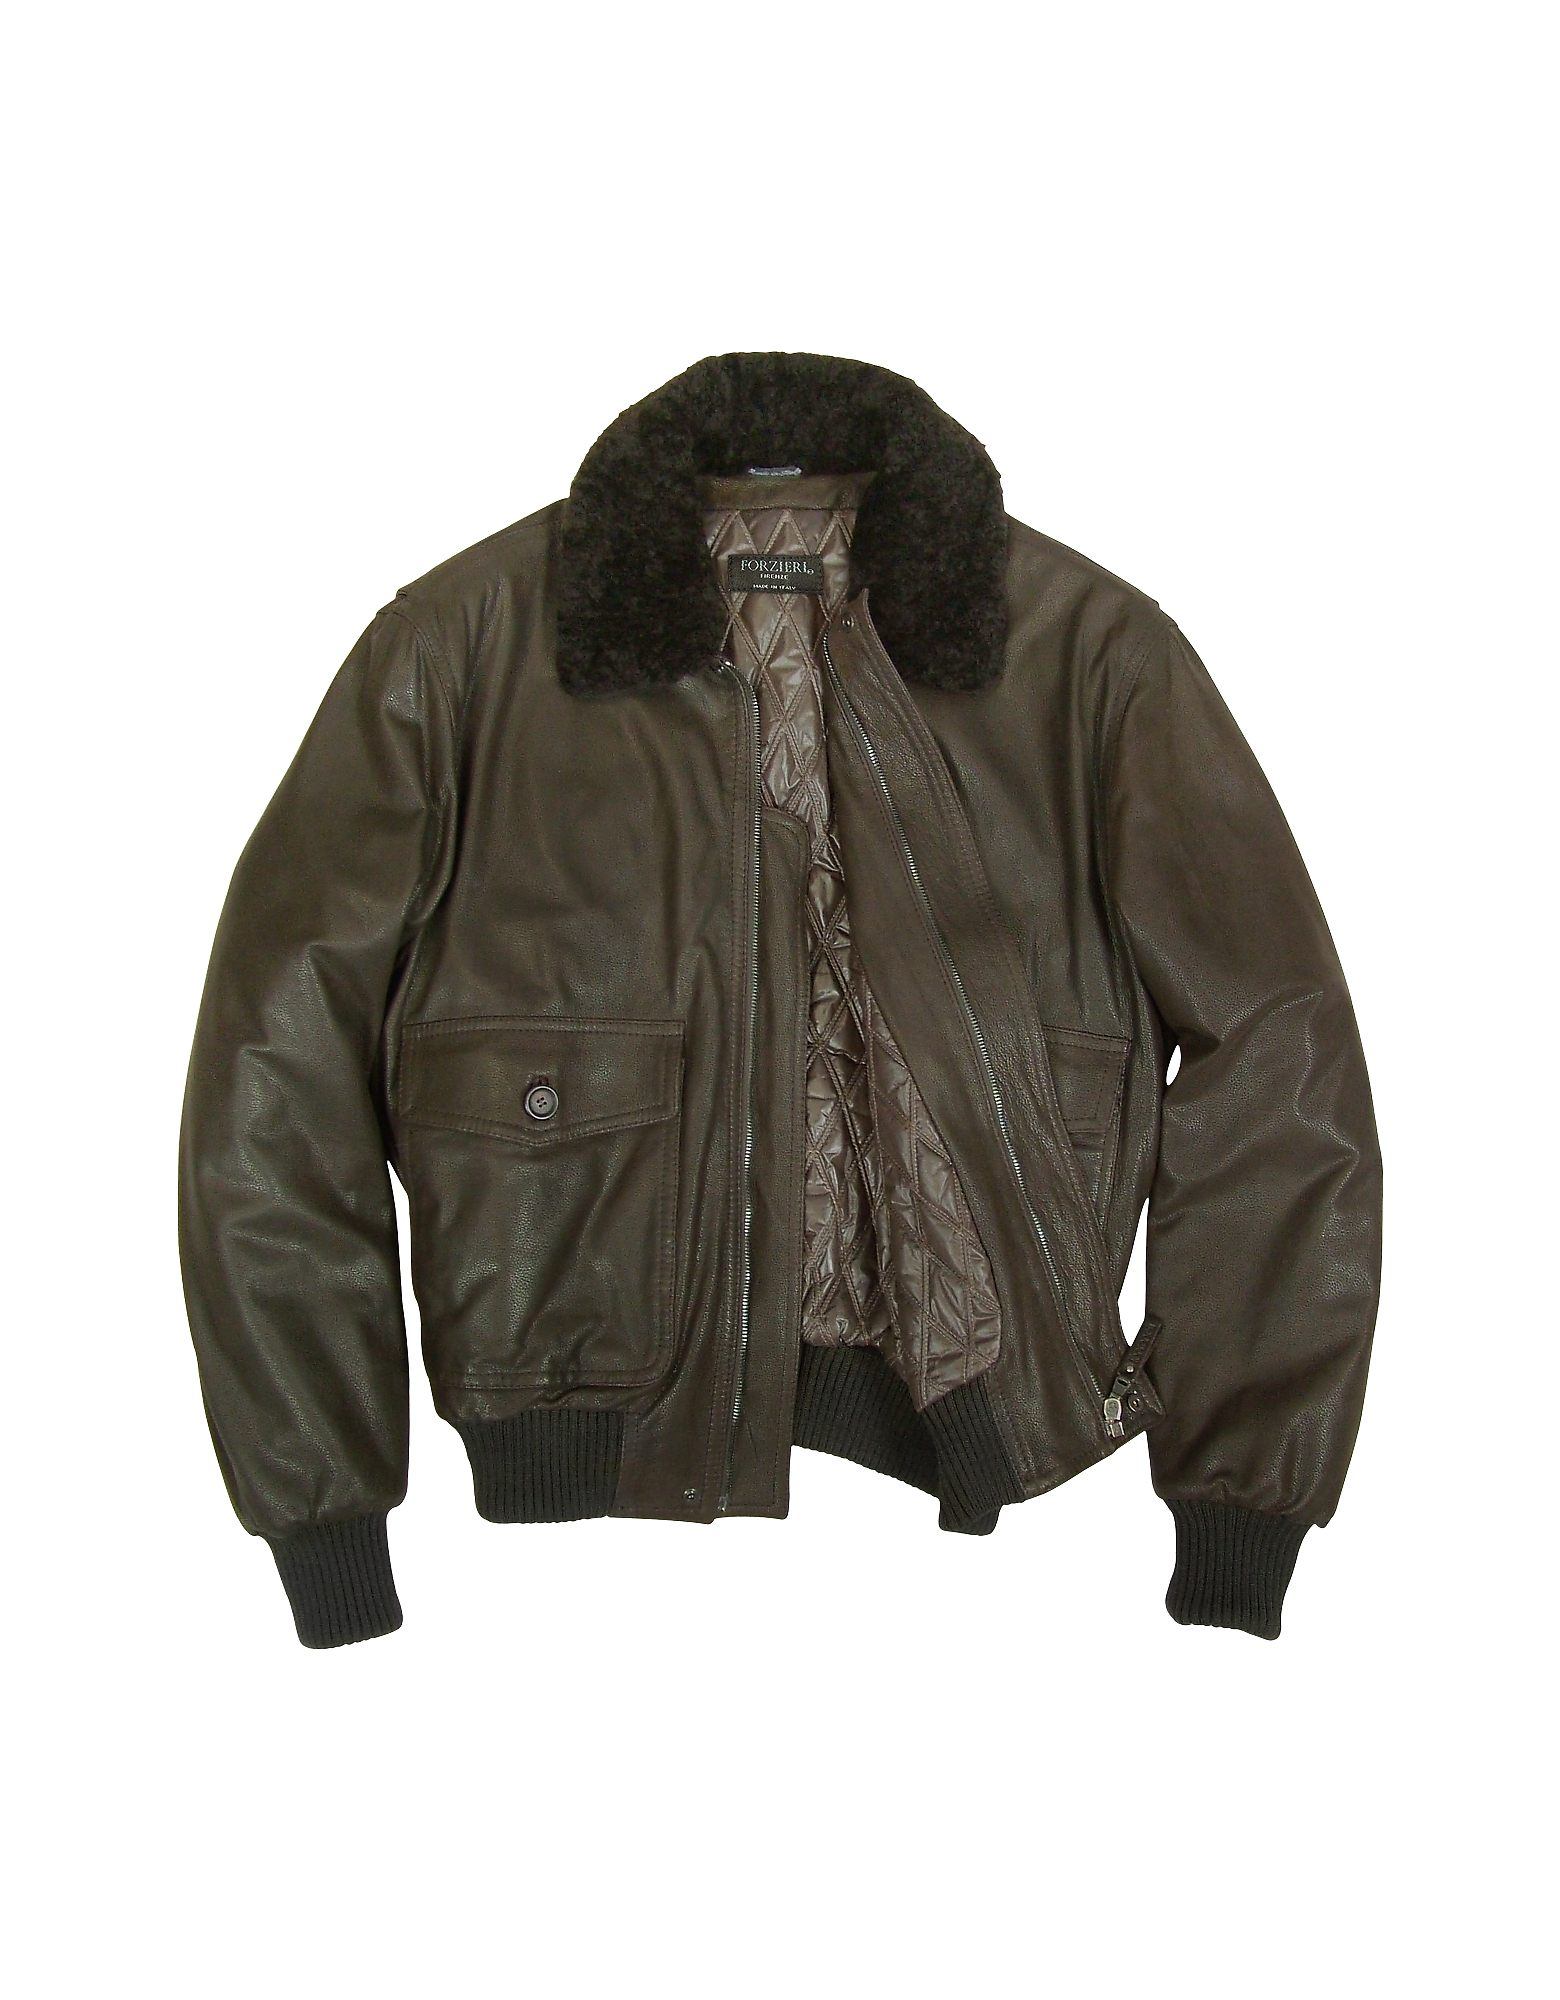 Men's Dark Brown Chevrette Two-Pocket Jacket w/Fur Collar от Forzieri.com INT